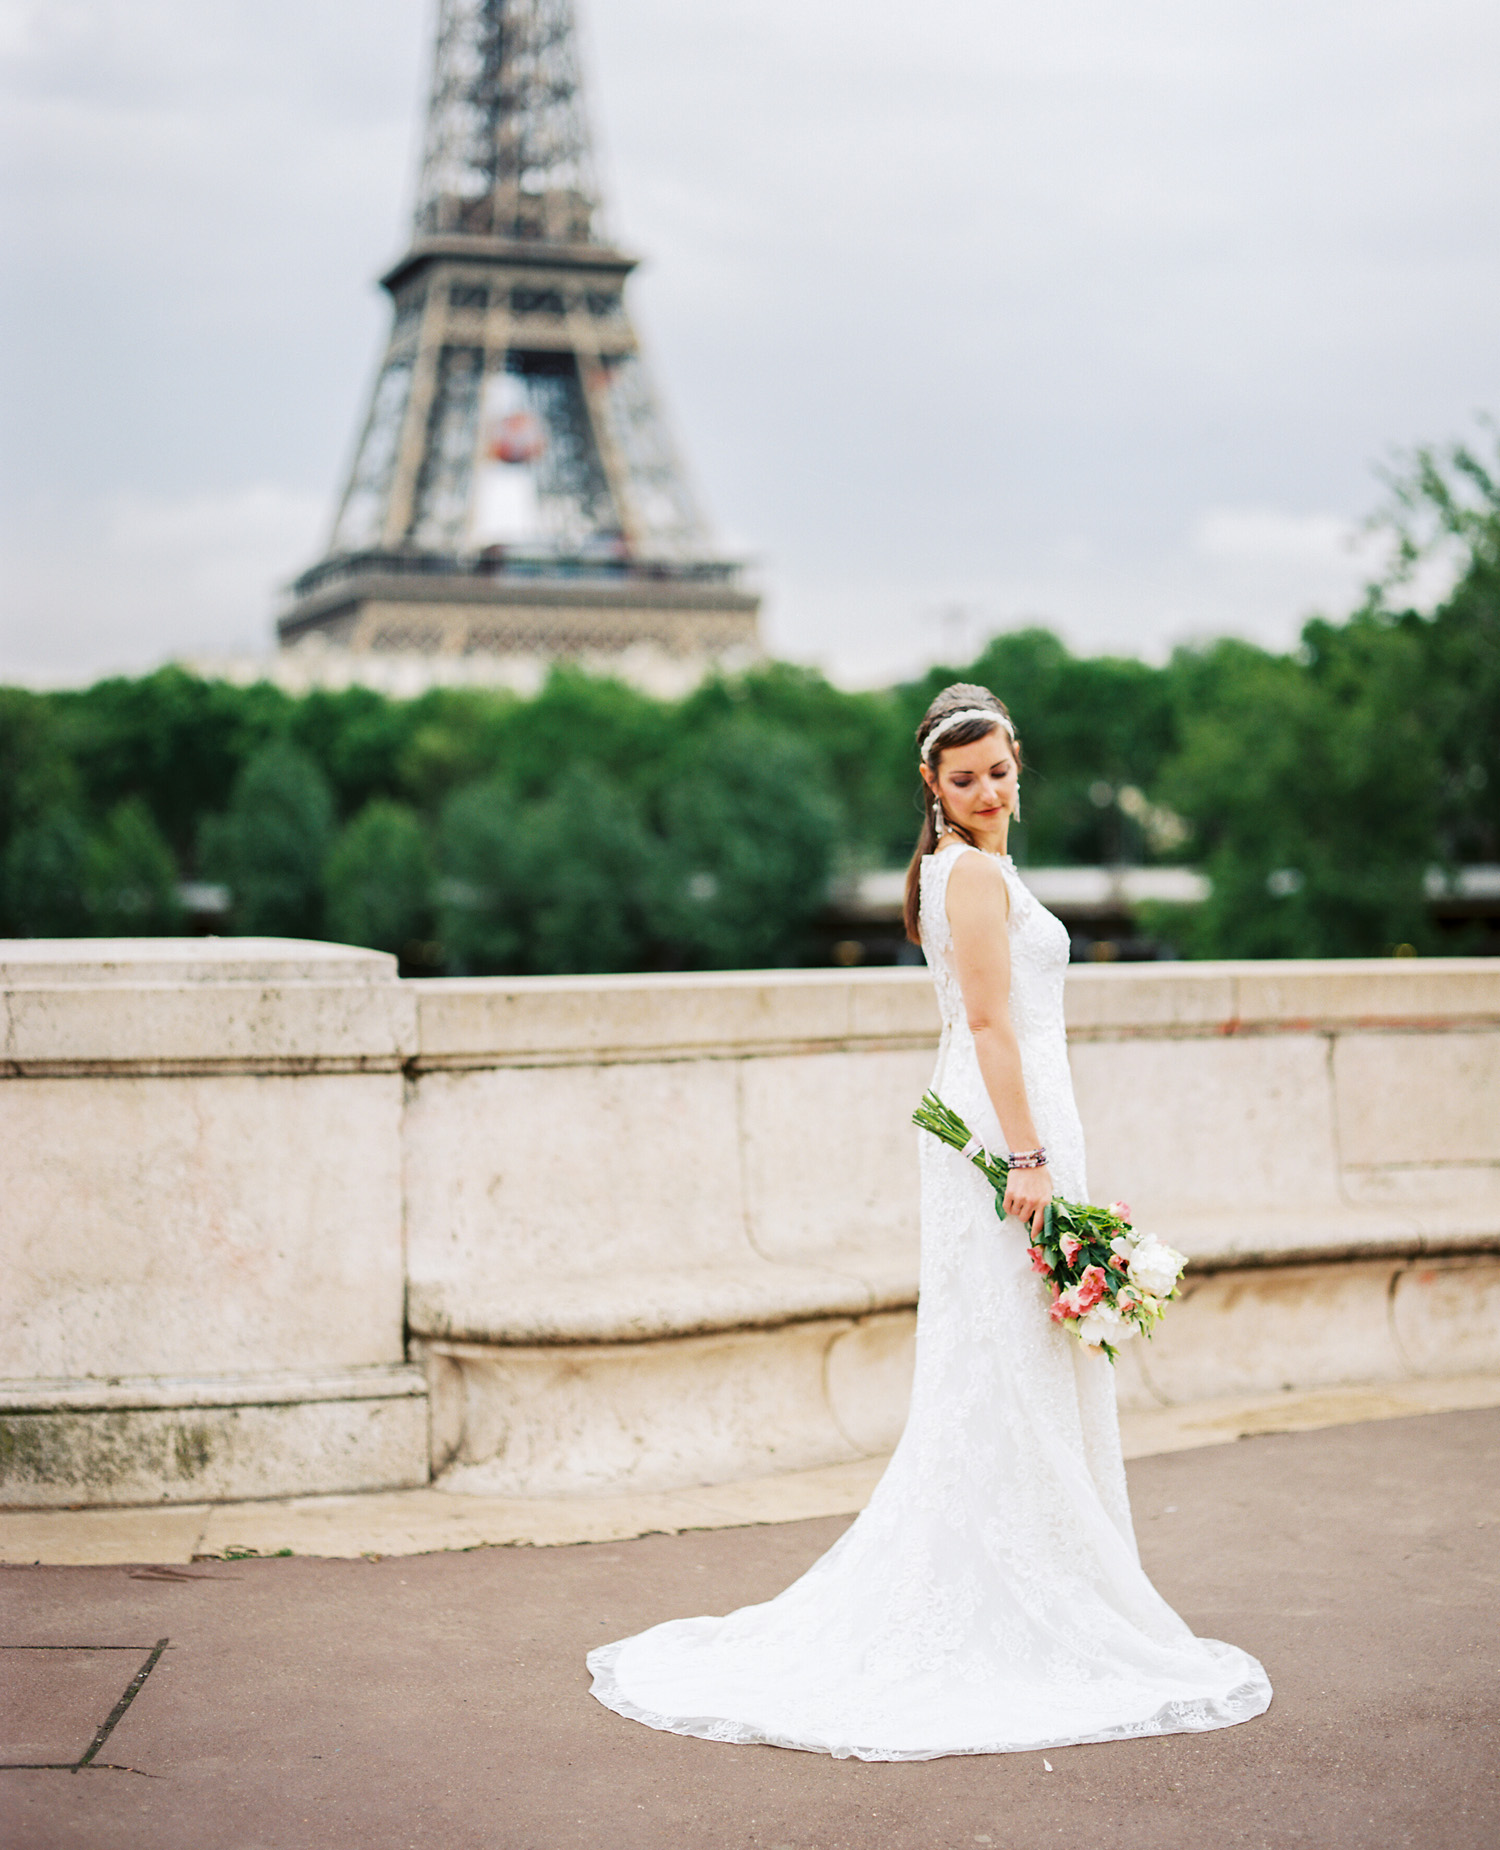 paris wedding photographer bridal photography.jpg